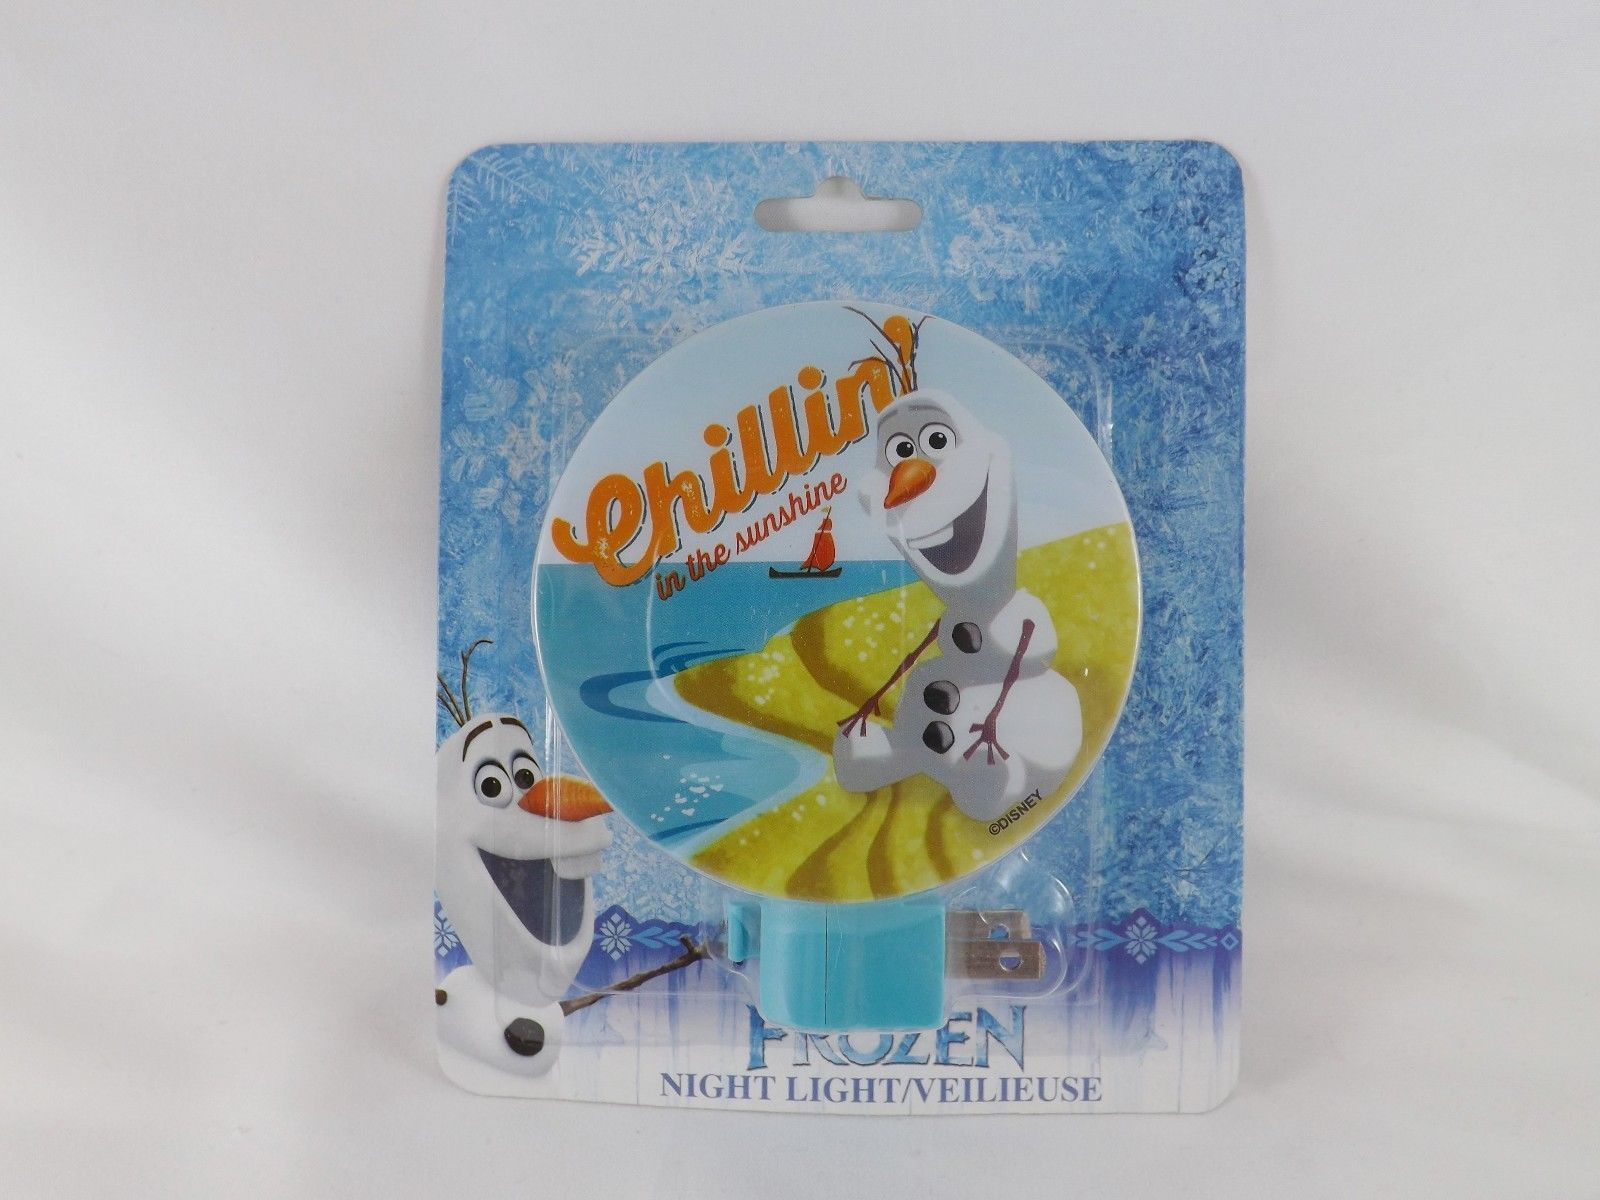 Disney Frozen Night Light with On/Off Switch- New -Olaf Chillin' in the Sunshine